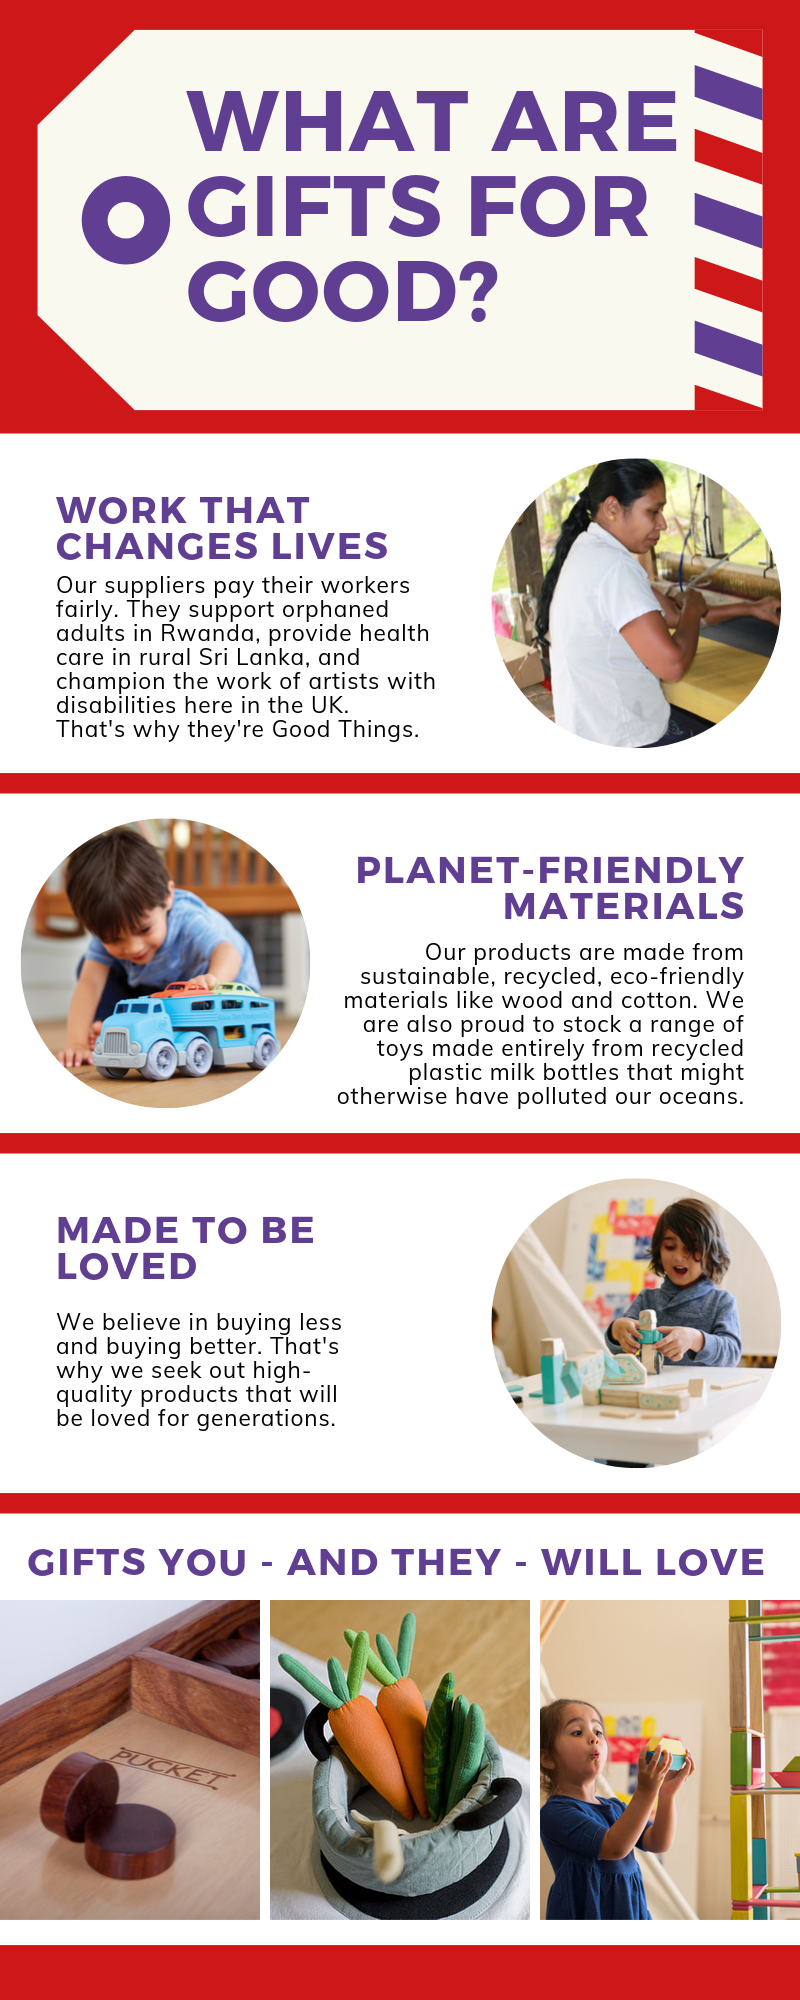 Gifts for Good eco-friendly, improving lives, made to last